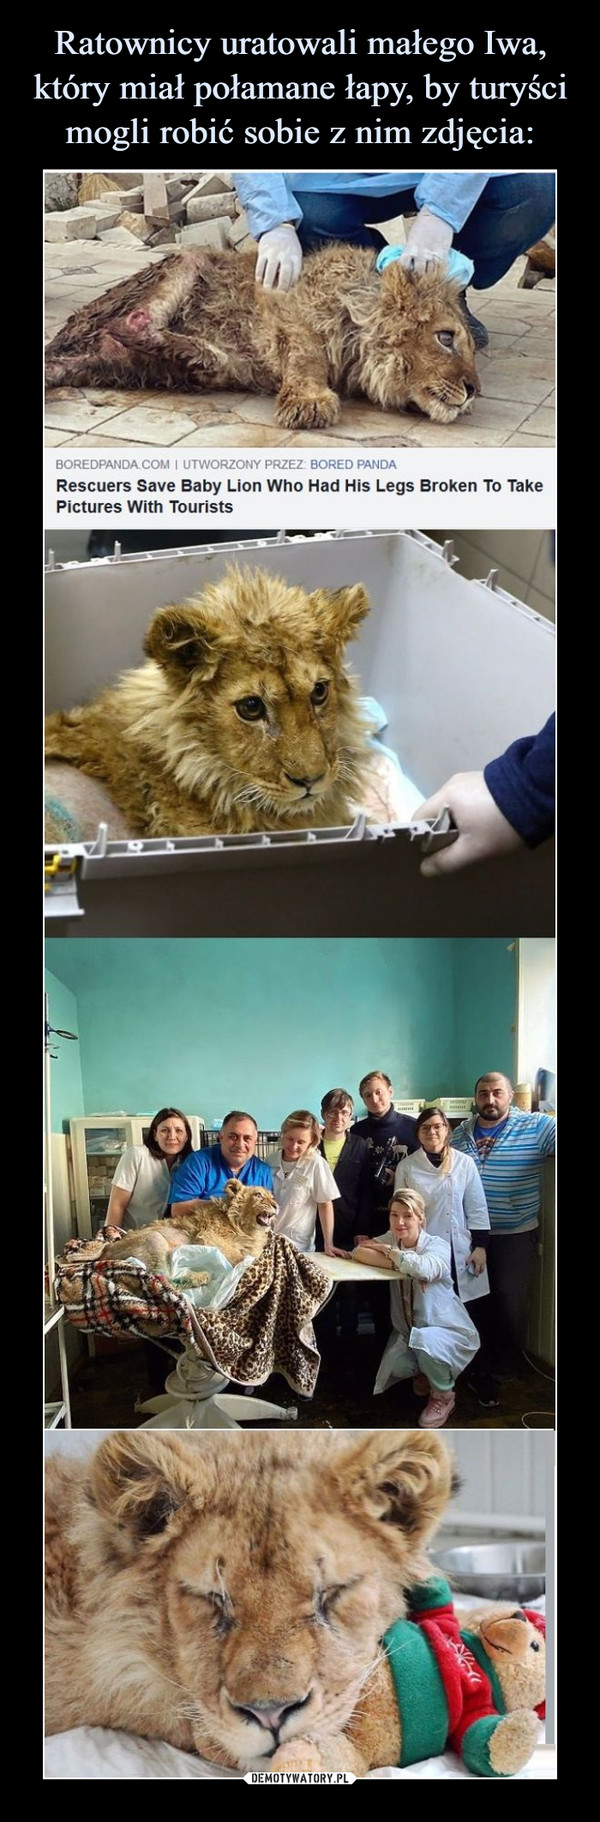 –  Rescuers save baby lion who had his legs broken to take pictures with tourists